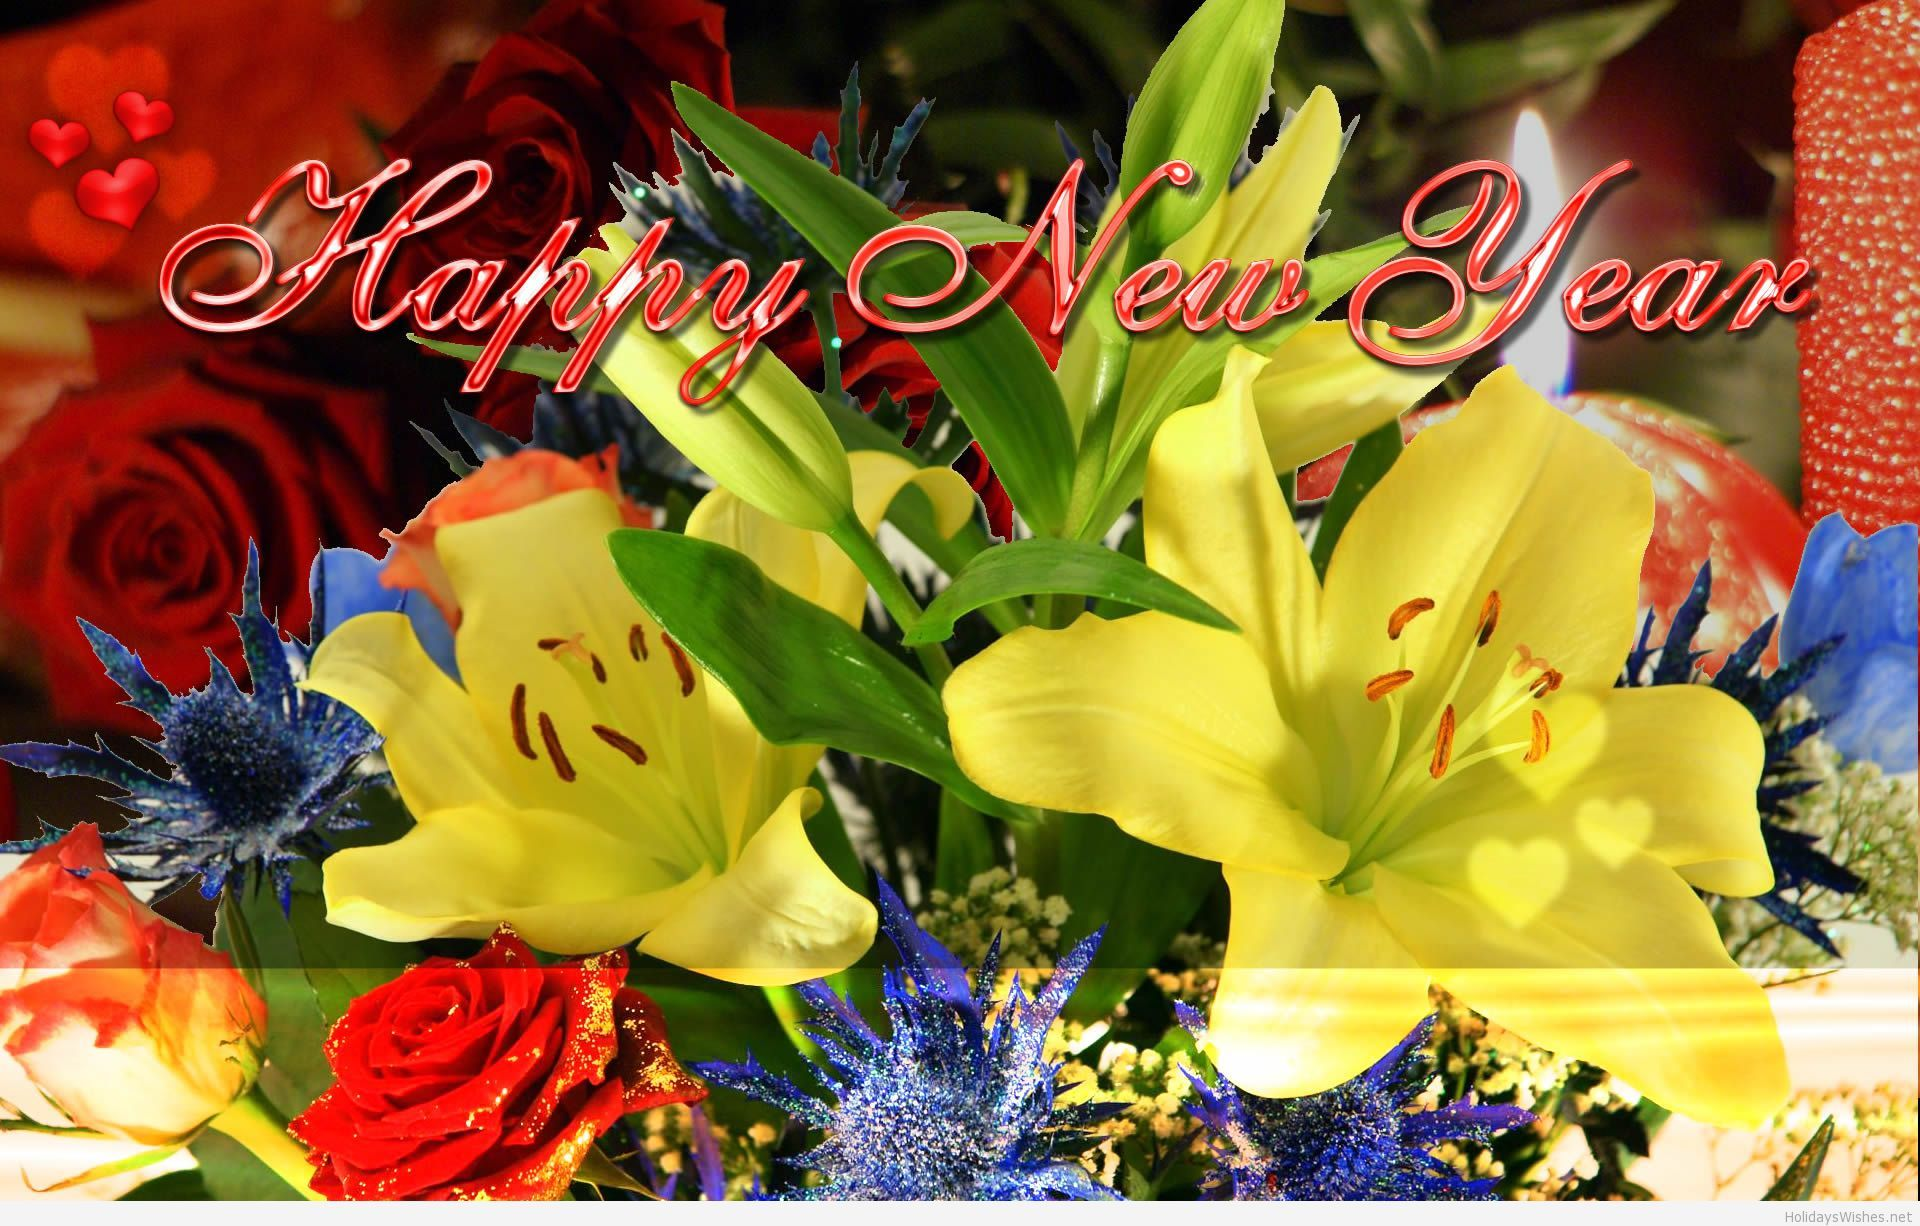 Happy new year flowers new year wallpapers new year pinterest happy new year flowers new year wallpapers voltagebd Image collections